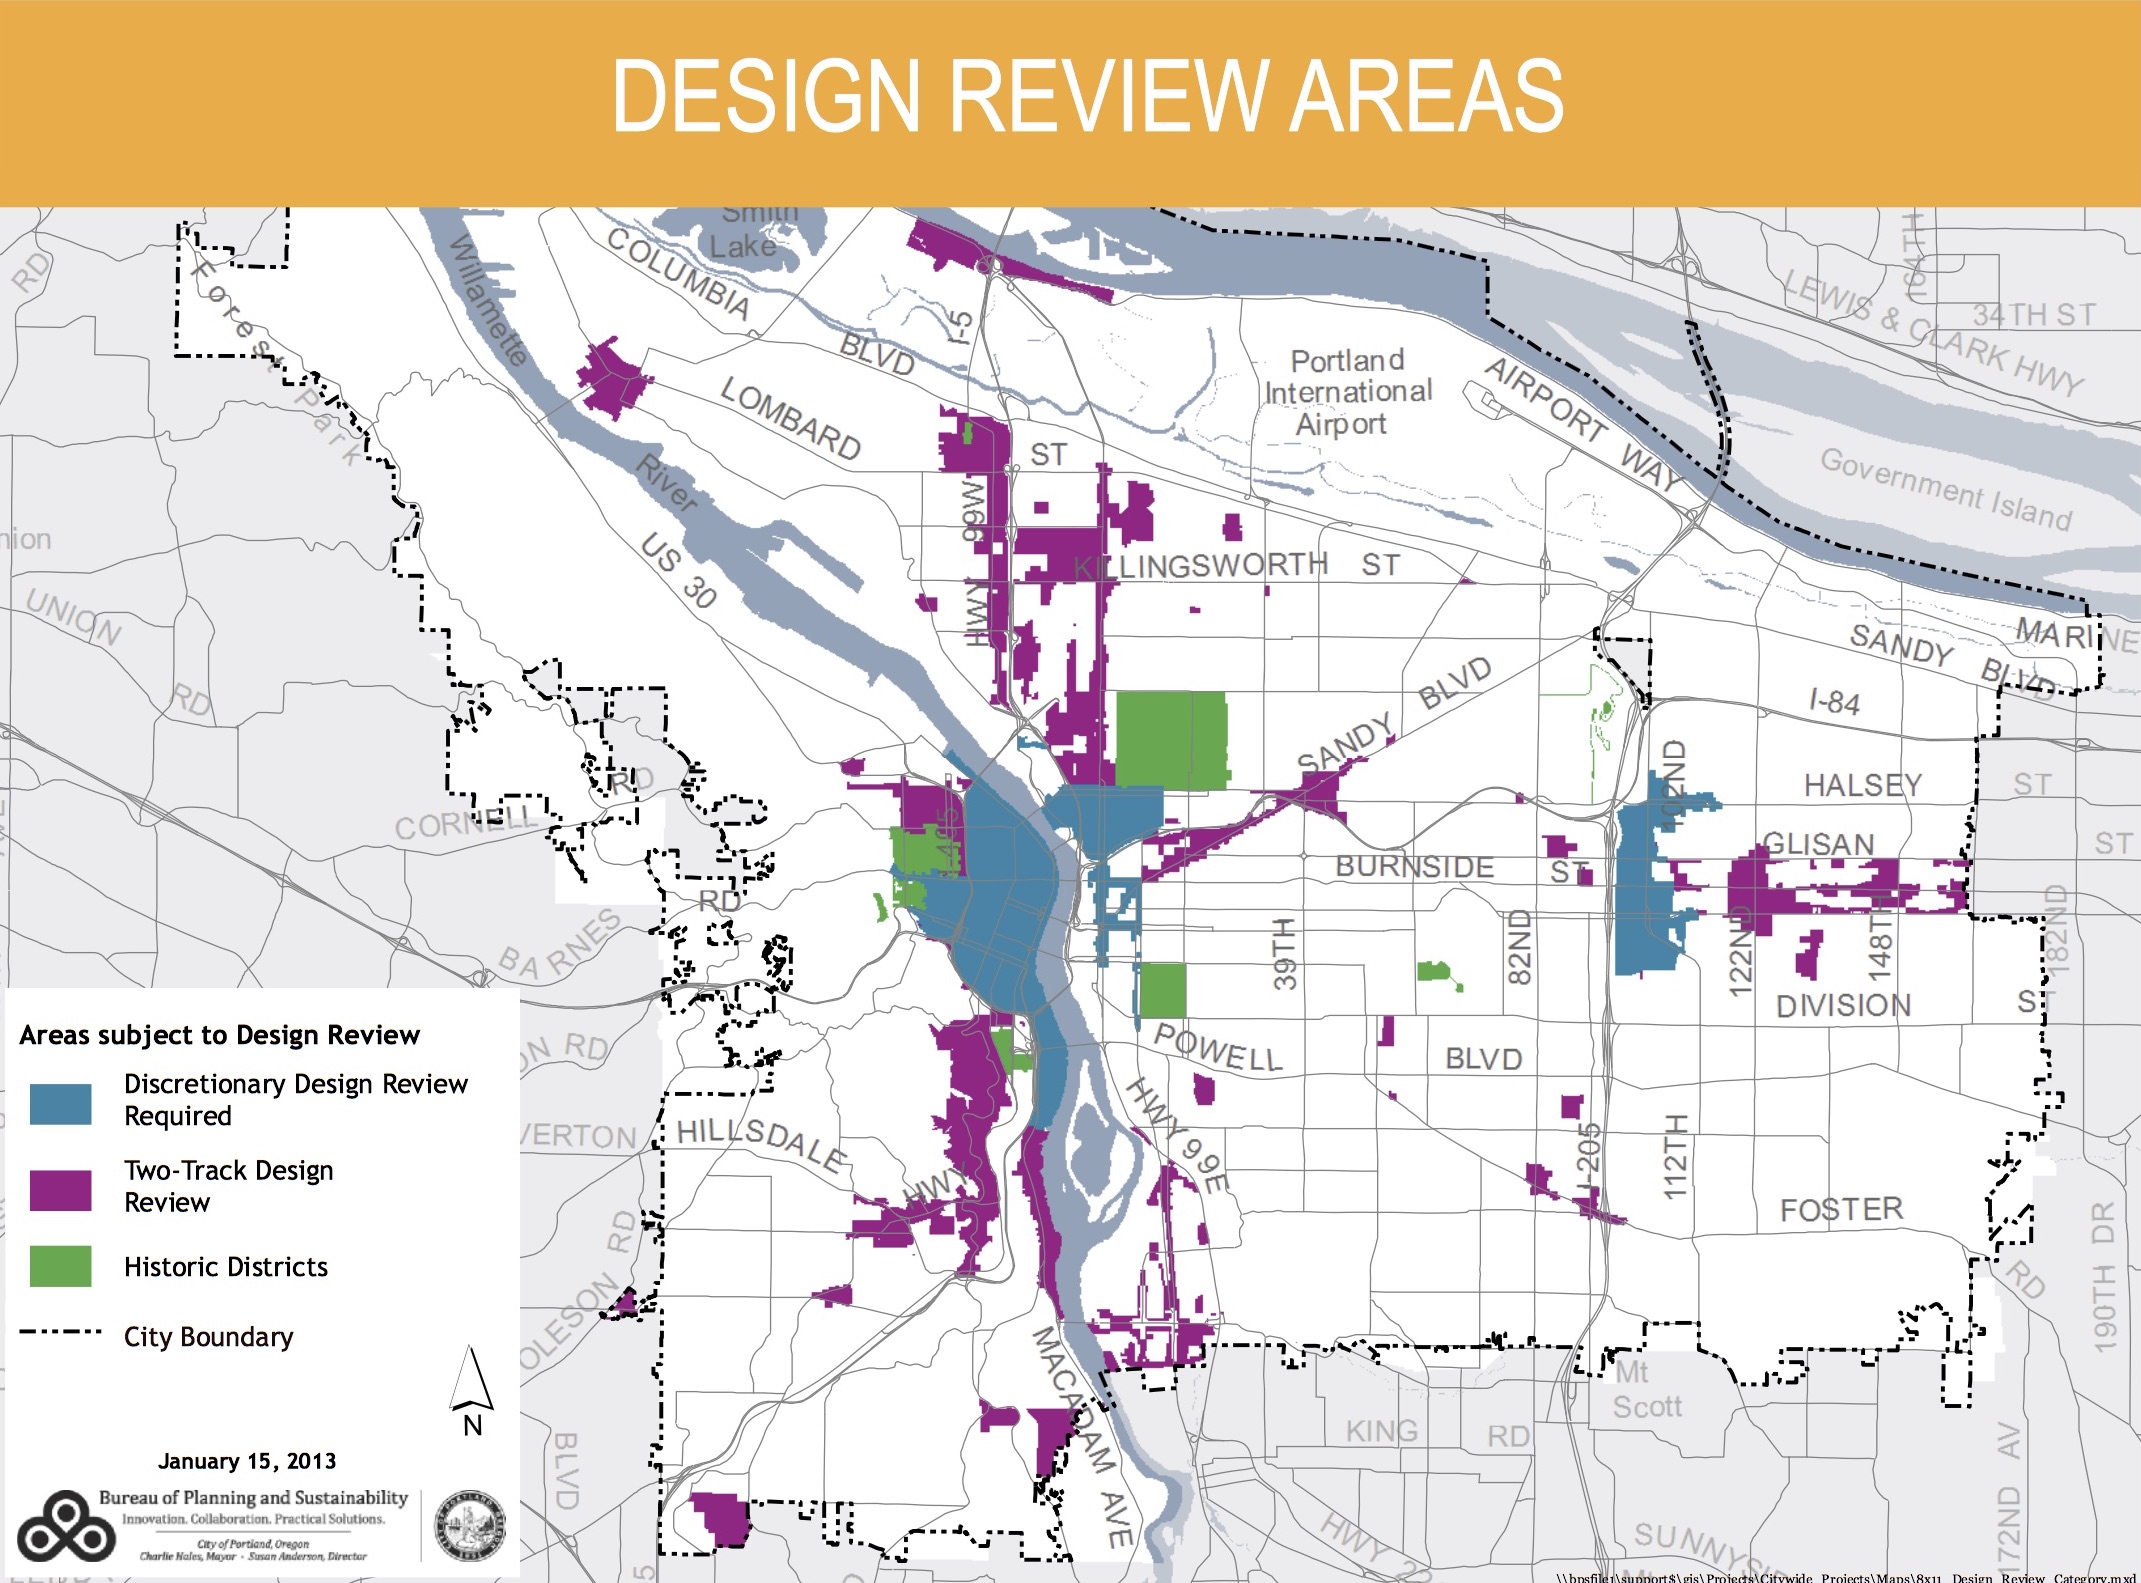 Areas of the city subject to Design Review. With some exceptions, the Design Commission reviews projects in the blue areas. Projects in the purple areas typically only come before the Design Commission if they are appealed. Areas in white are not subject to Design Review.